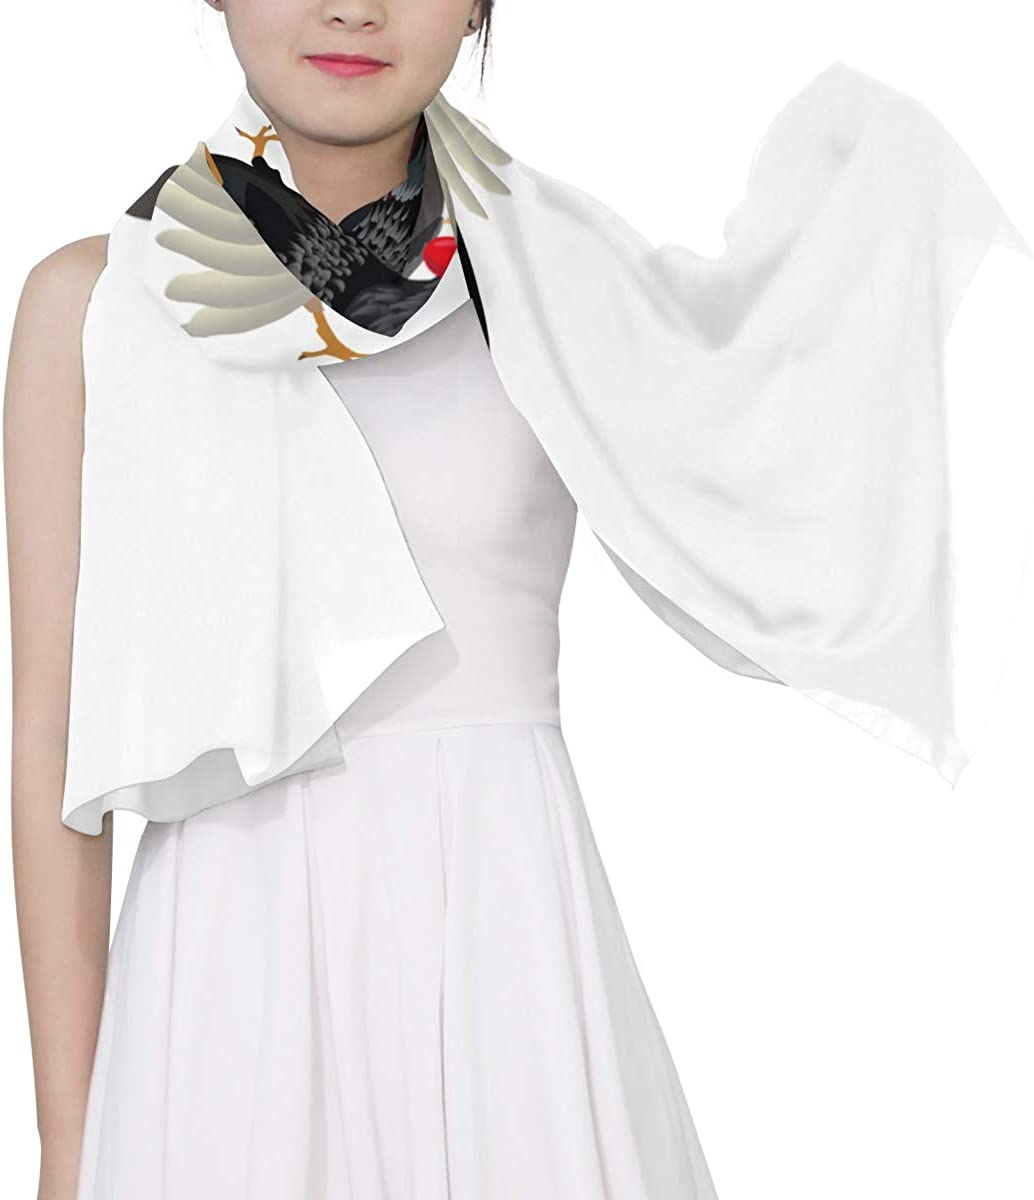 Farm Cockfighting Unique Fashion Scarf For Women Lightweight Fashion Fall Winter Print Scarves Shawl Wraps Gifts For Early Spring